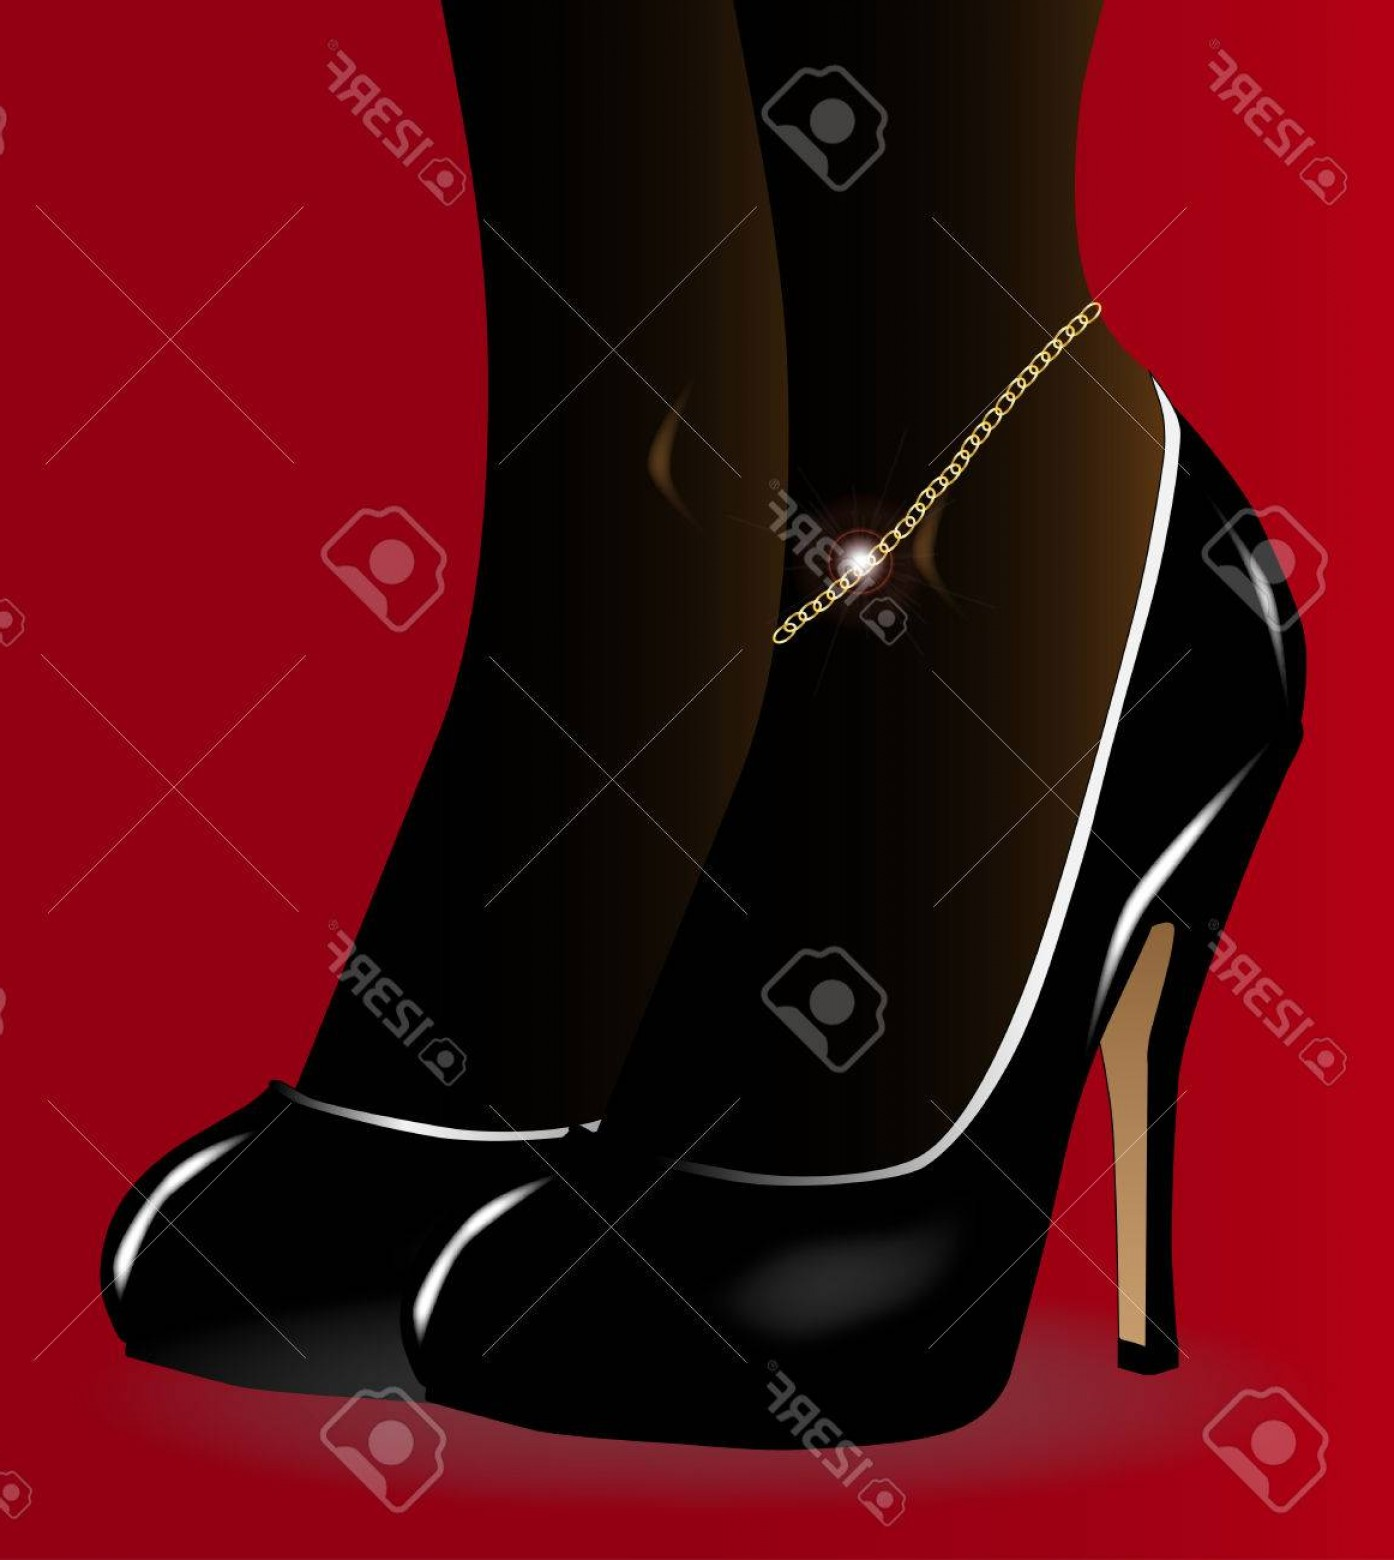 Silhouette Hee High Vector Lsitleetios: Photostock Vector A Pair Of Black Stiletto Heel Shoes With A Ladies Gold Ankle Bracelet